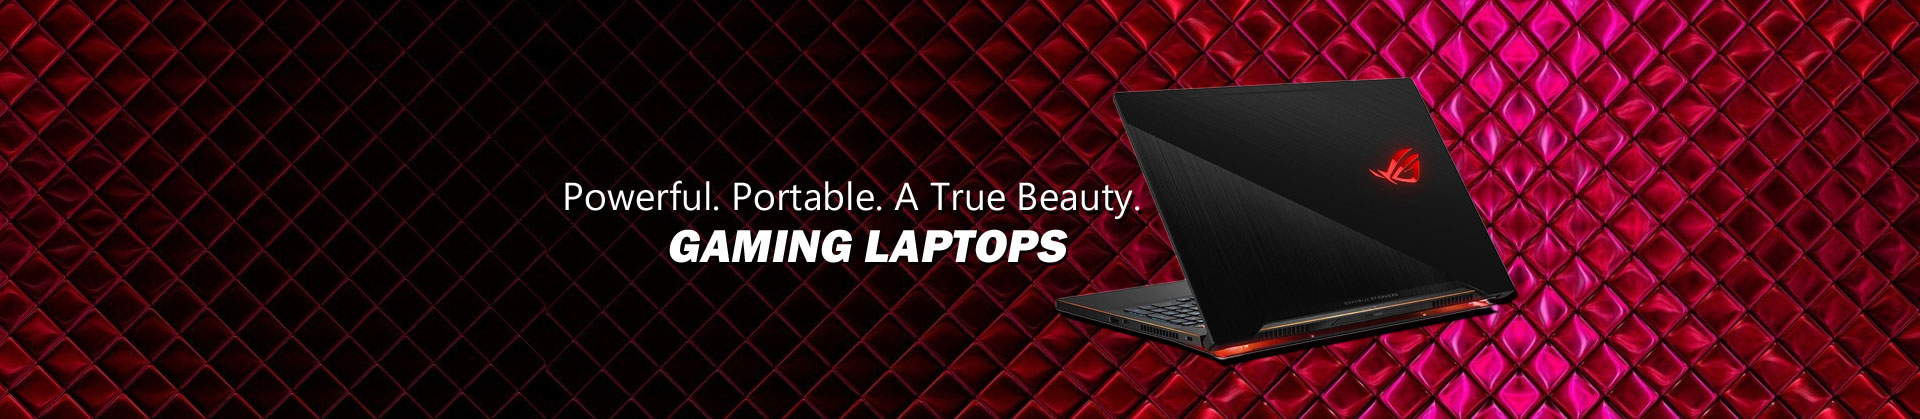 Refurbished Gaming Laptops from only £446.99